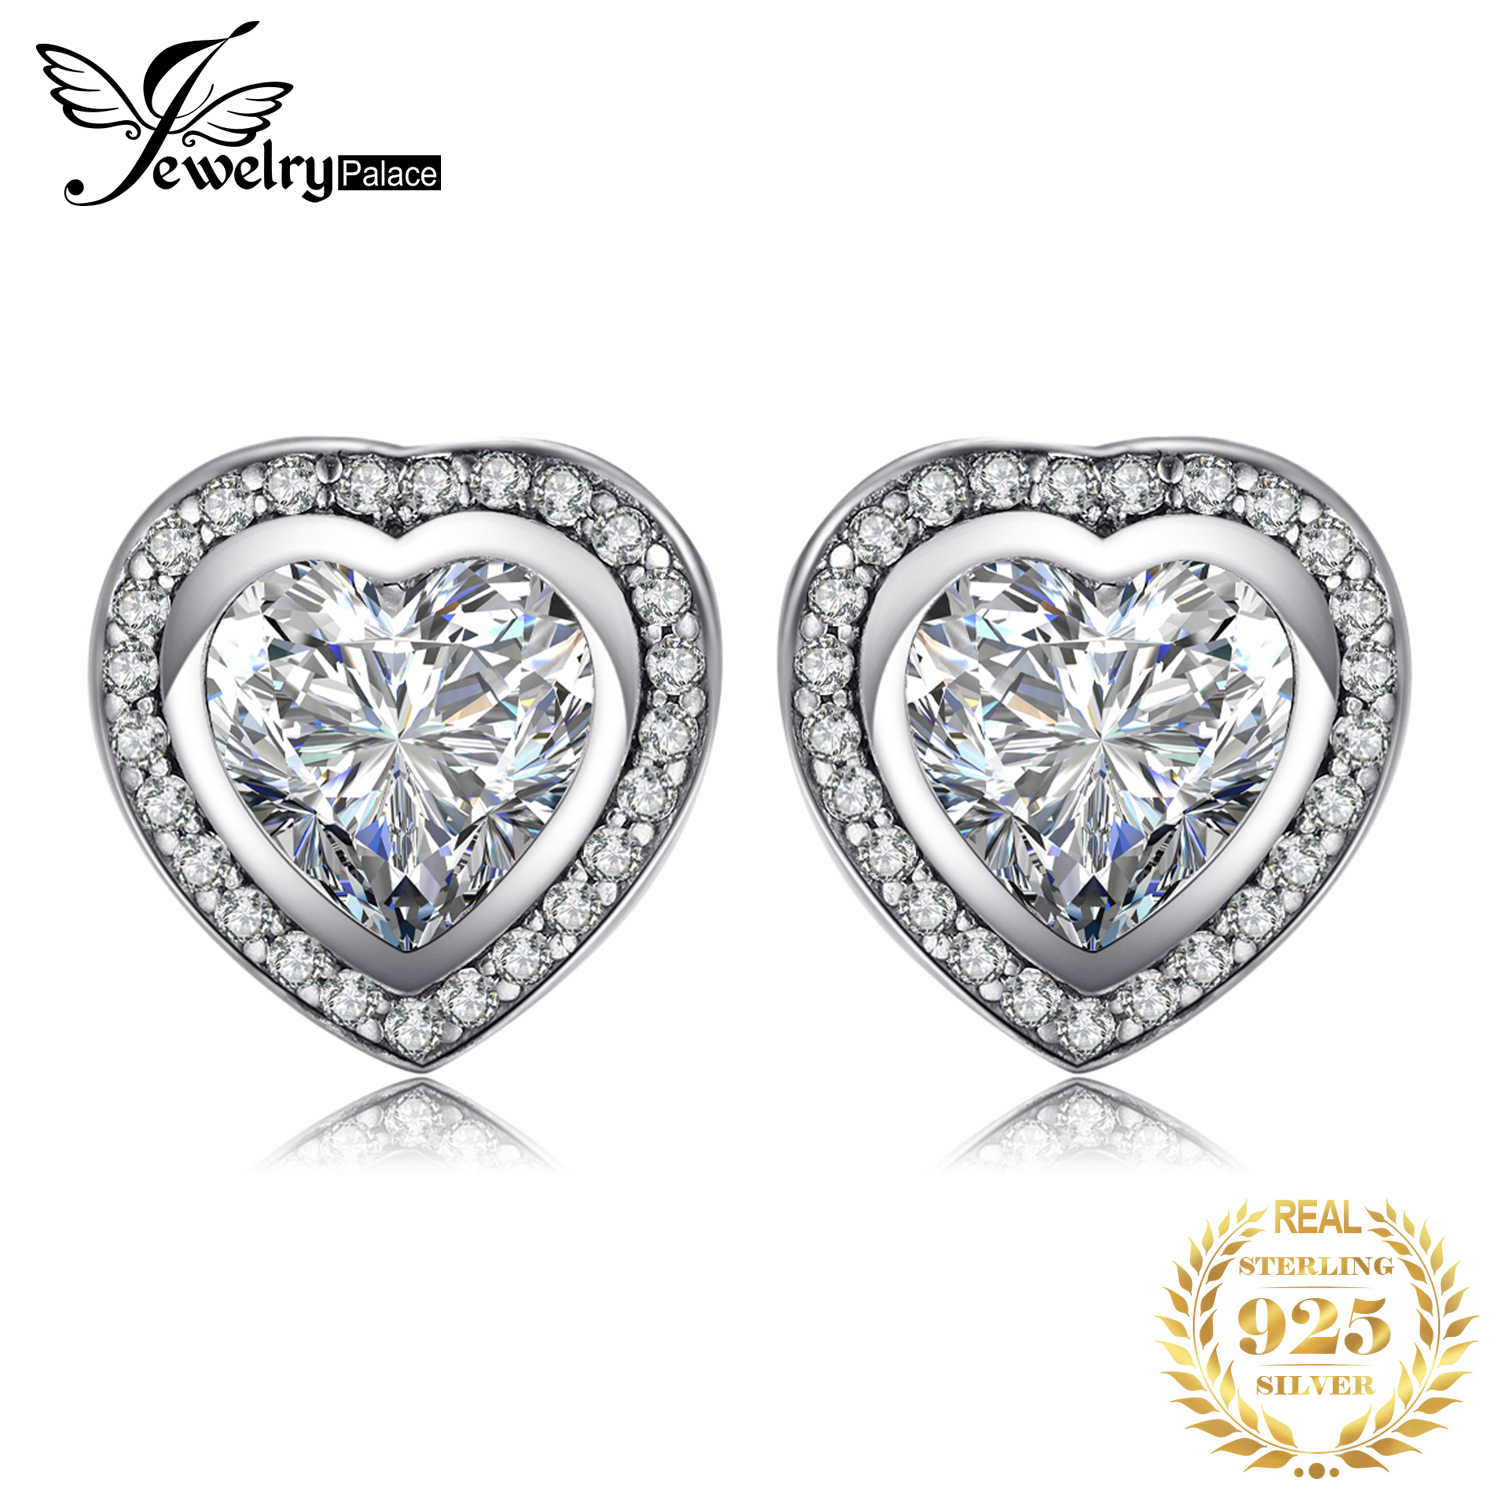 JewelryPalace Love Heart CZ Stud Earrings 925 Sterling Silver Earrings For Women Girls Korean Earrings Fashion Jewelry 2019